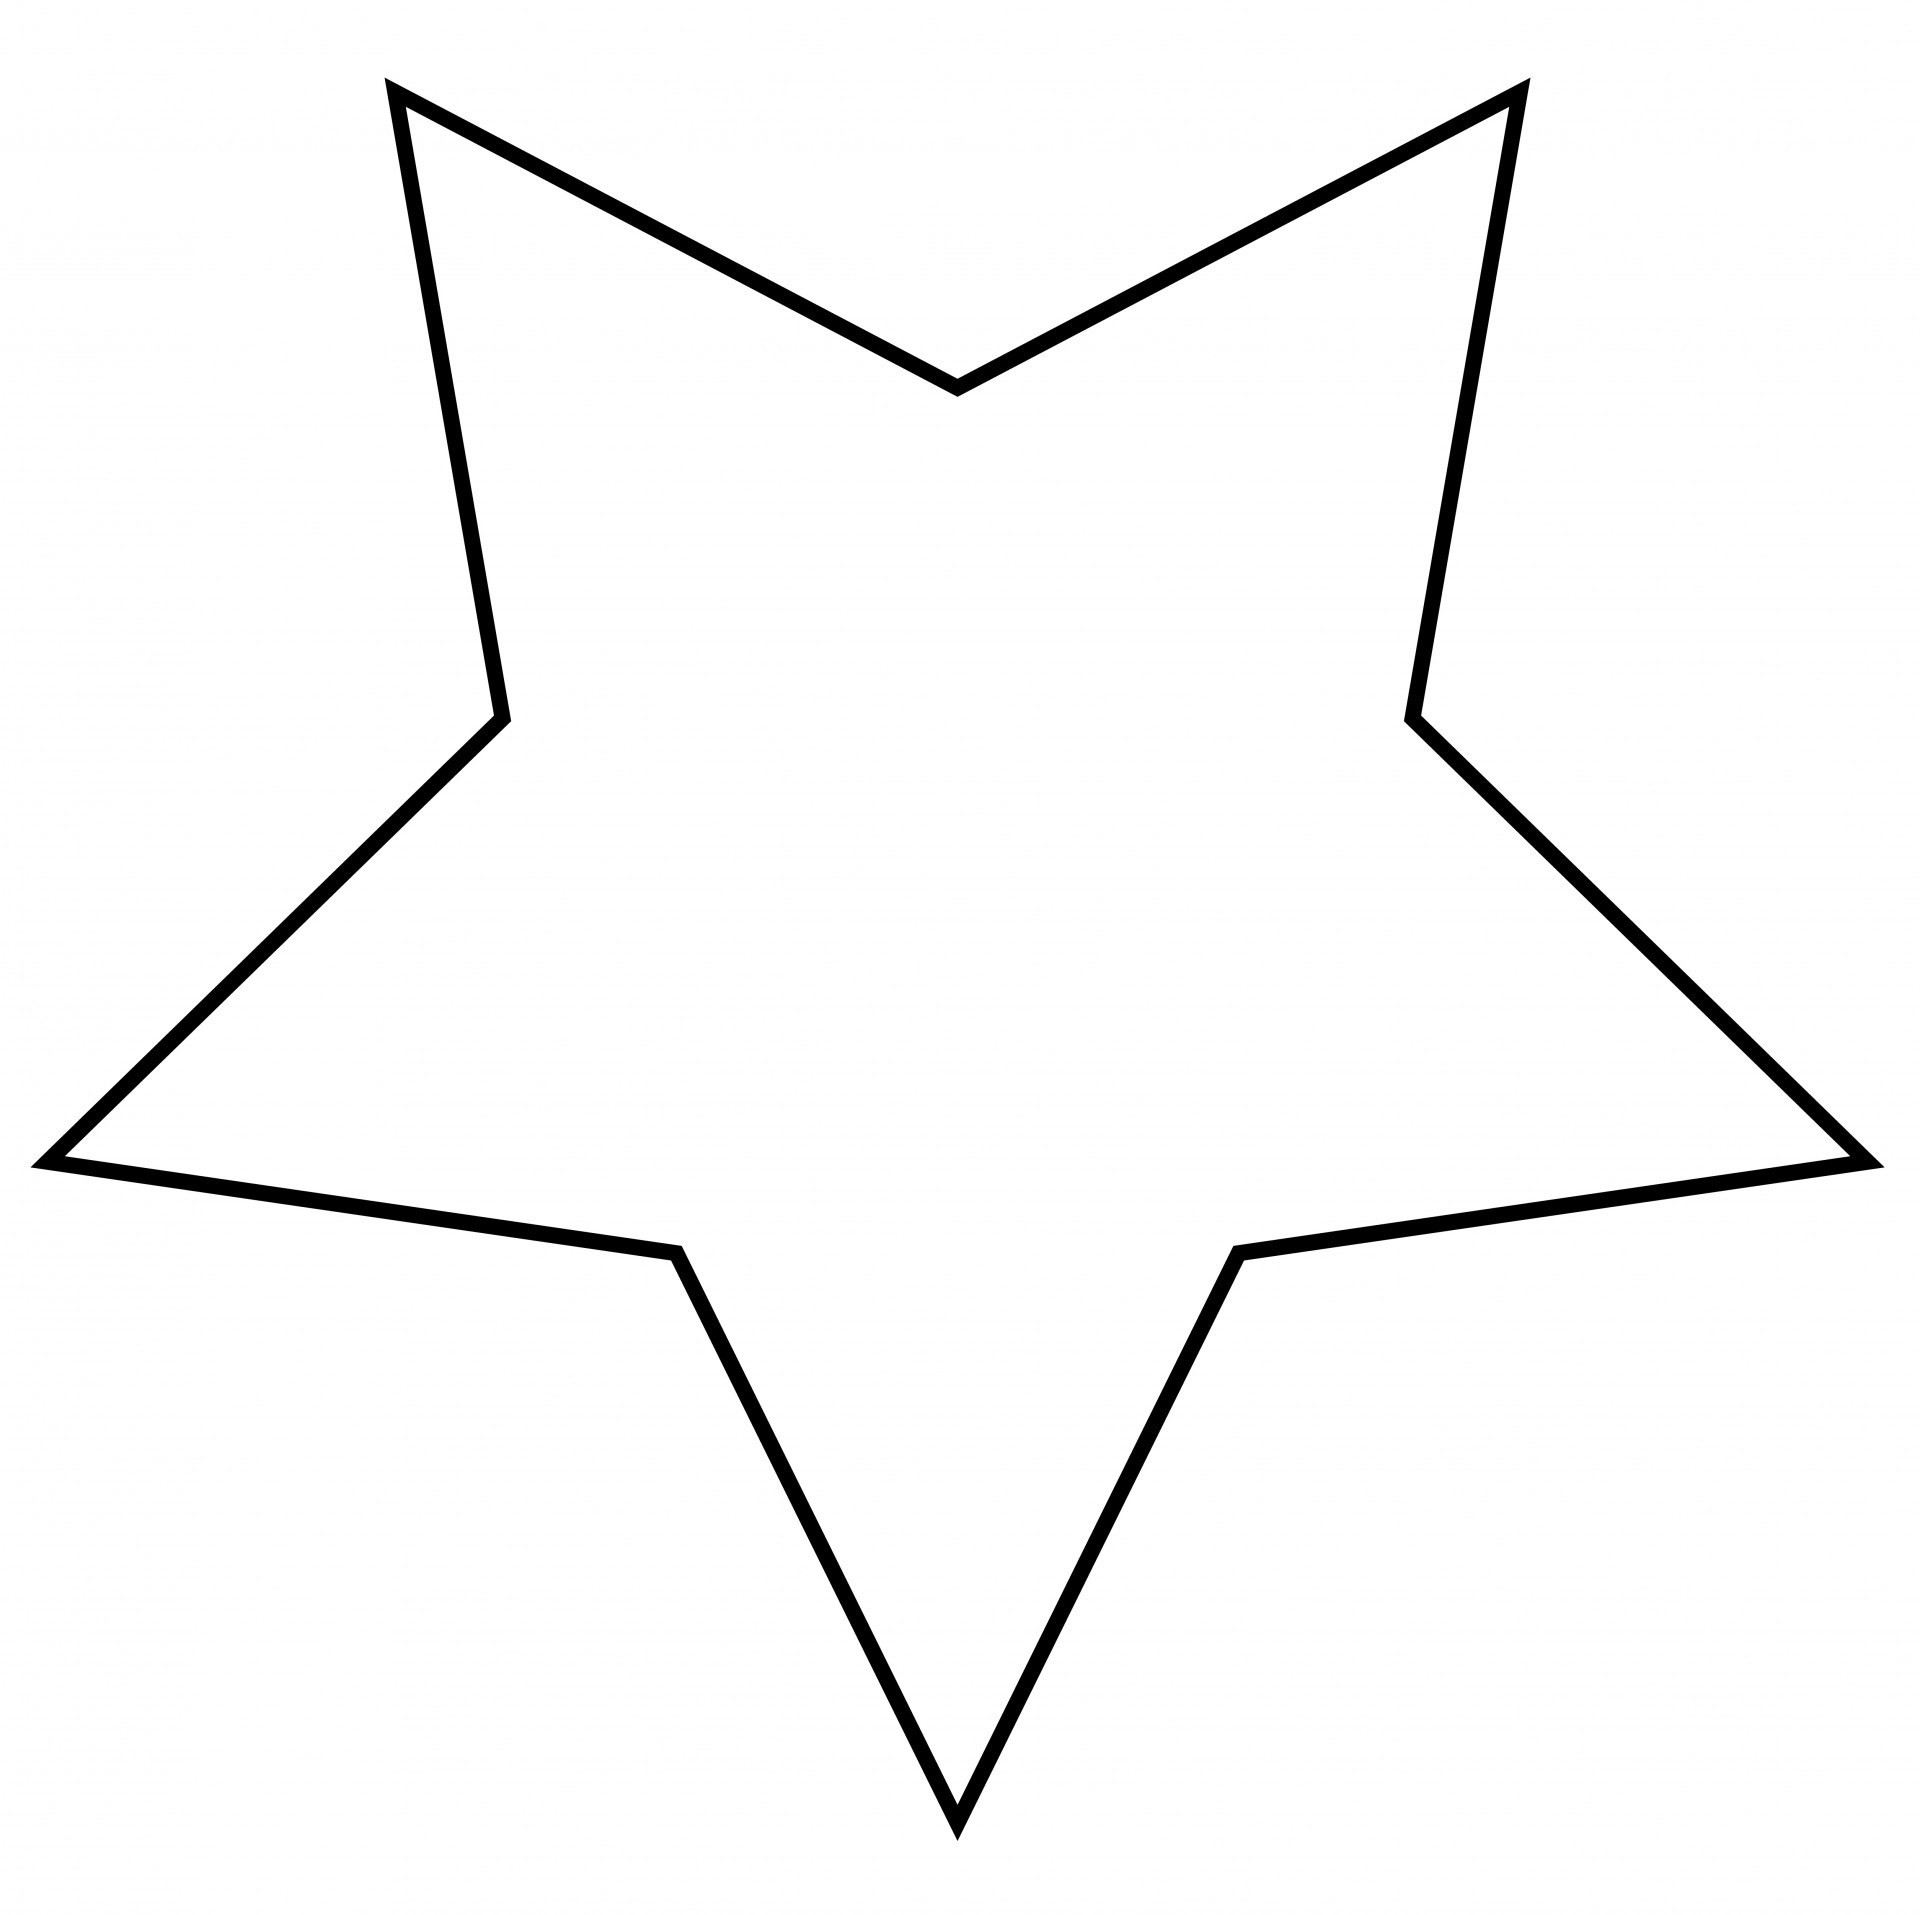 Star Outline Clipart Free Stock Photo.